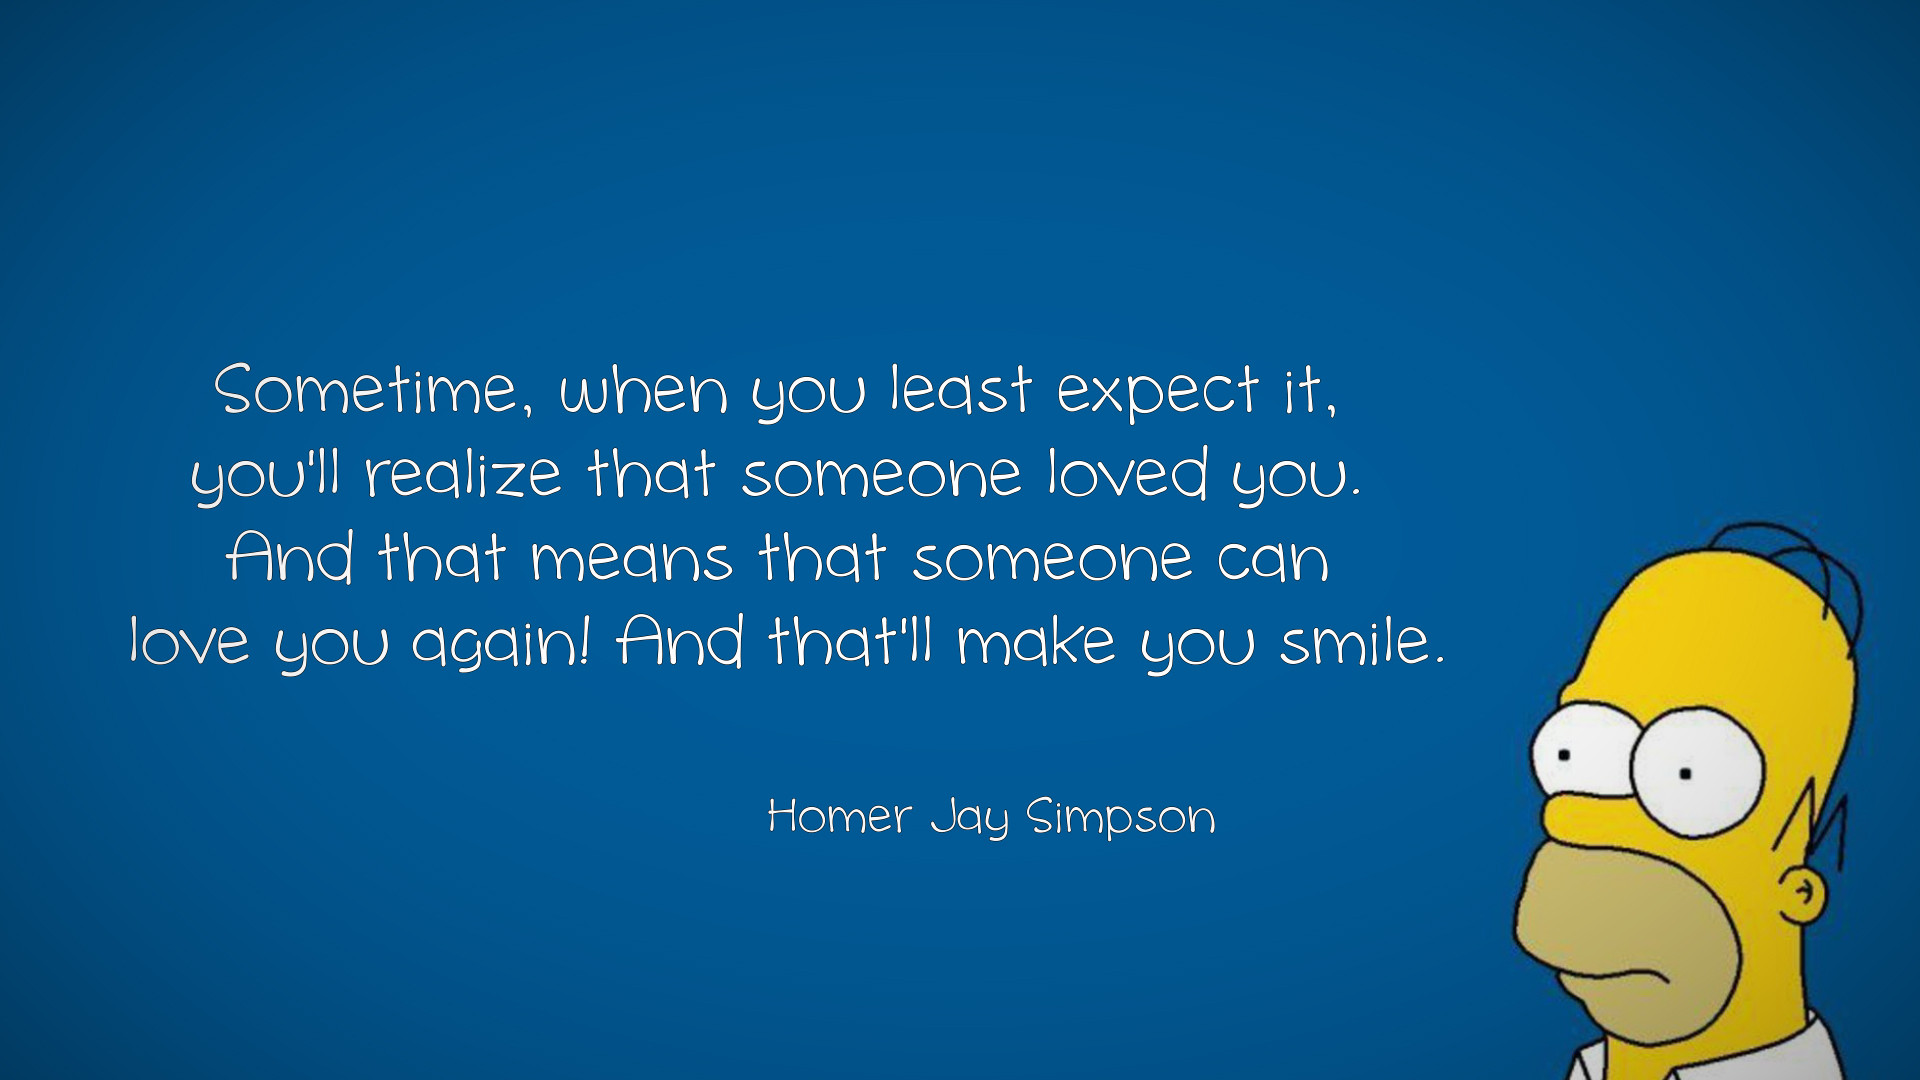 Homer Simpson Work Quotes Pictures To Pin On Pinterest Pinsdaddy